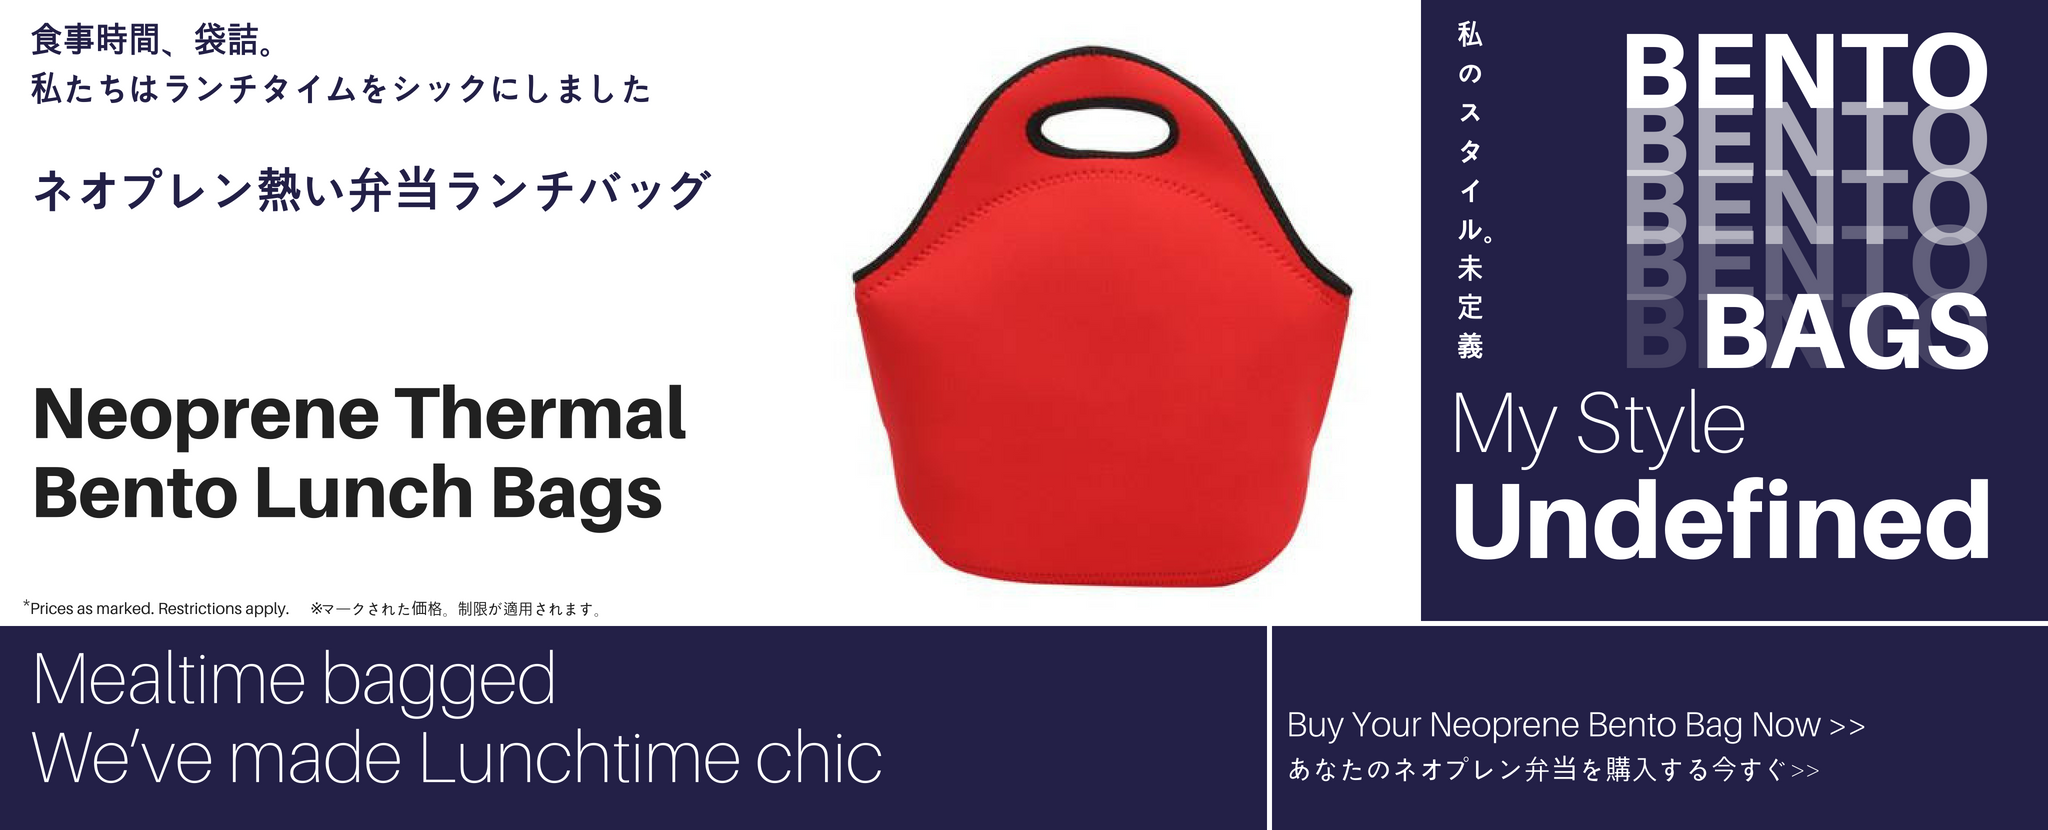 miTeigi Bento Bags Collection - Neoprene Thermal Bento Lunch Bags ベントバッグコレクション - ネオプレン熱い弁当ランチバッグ